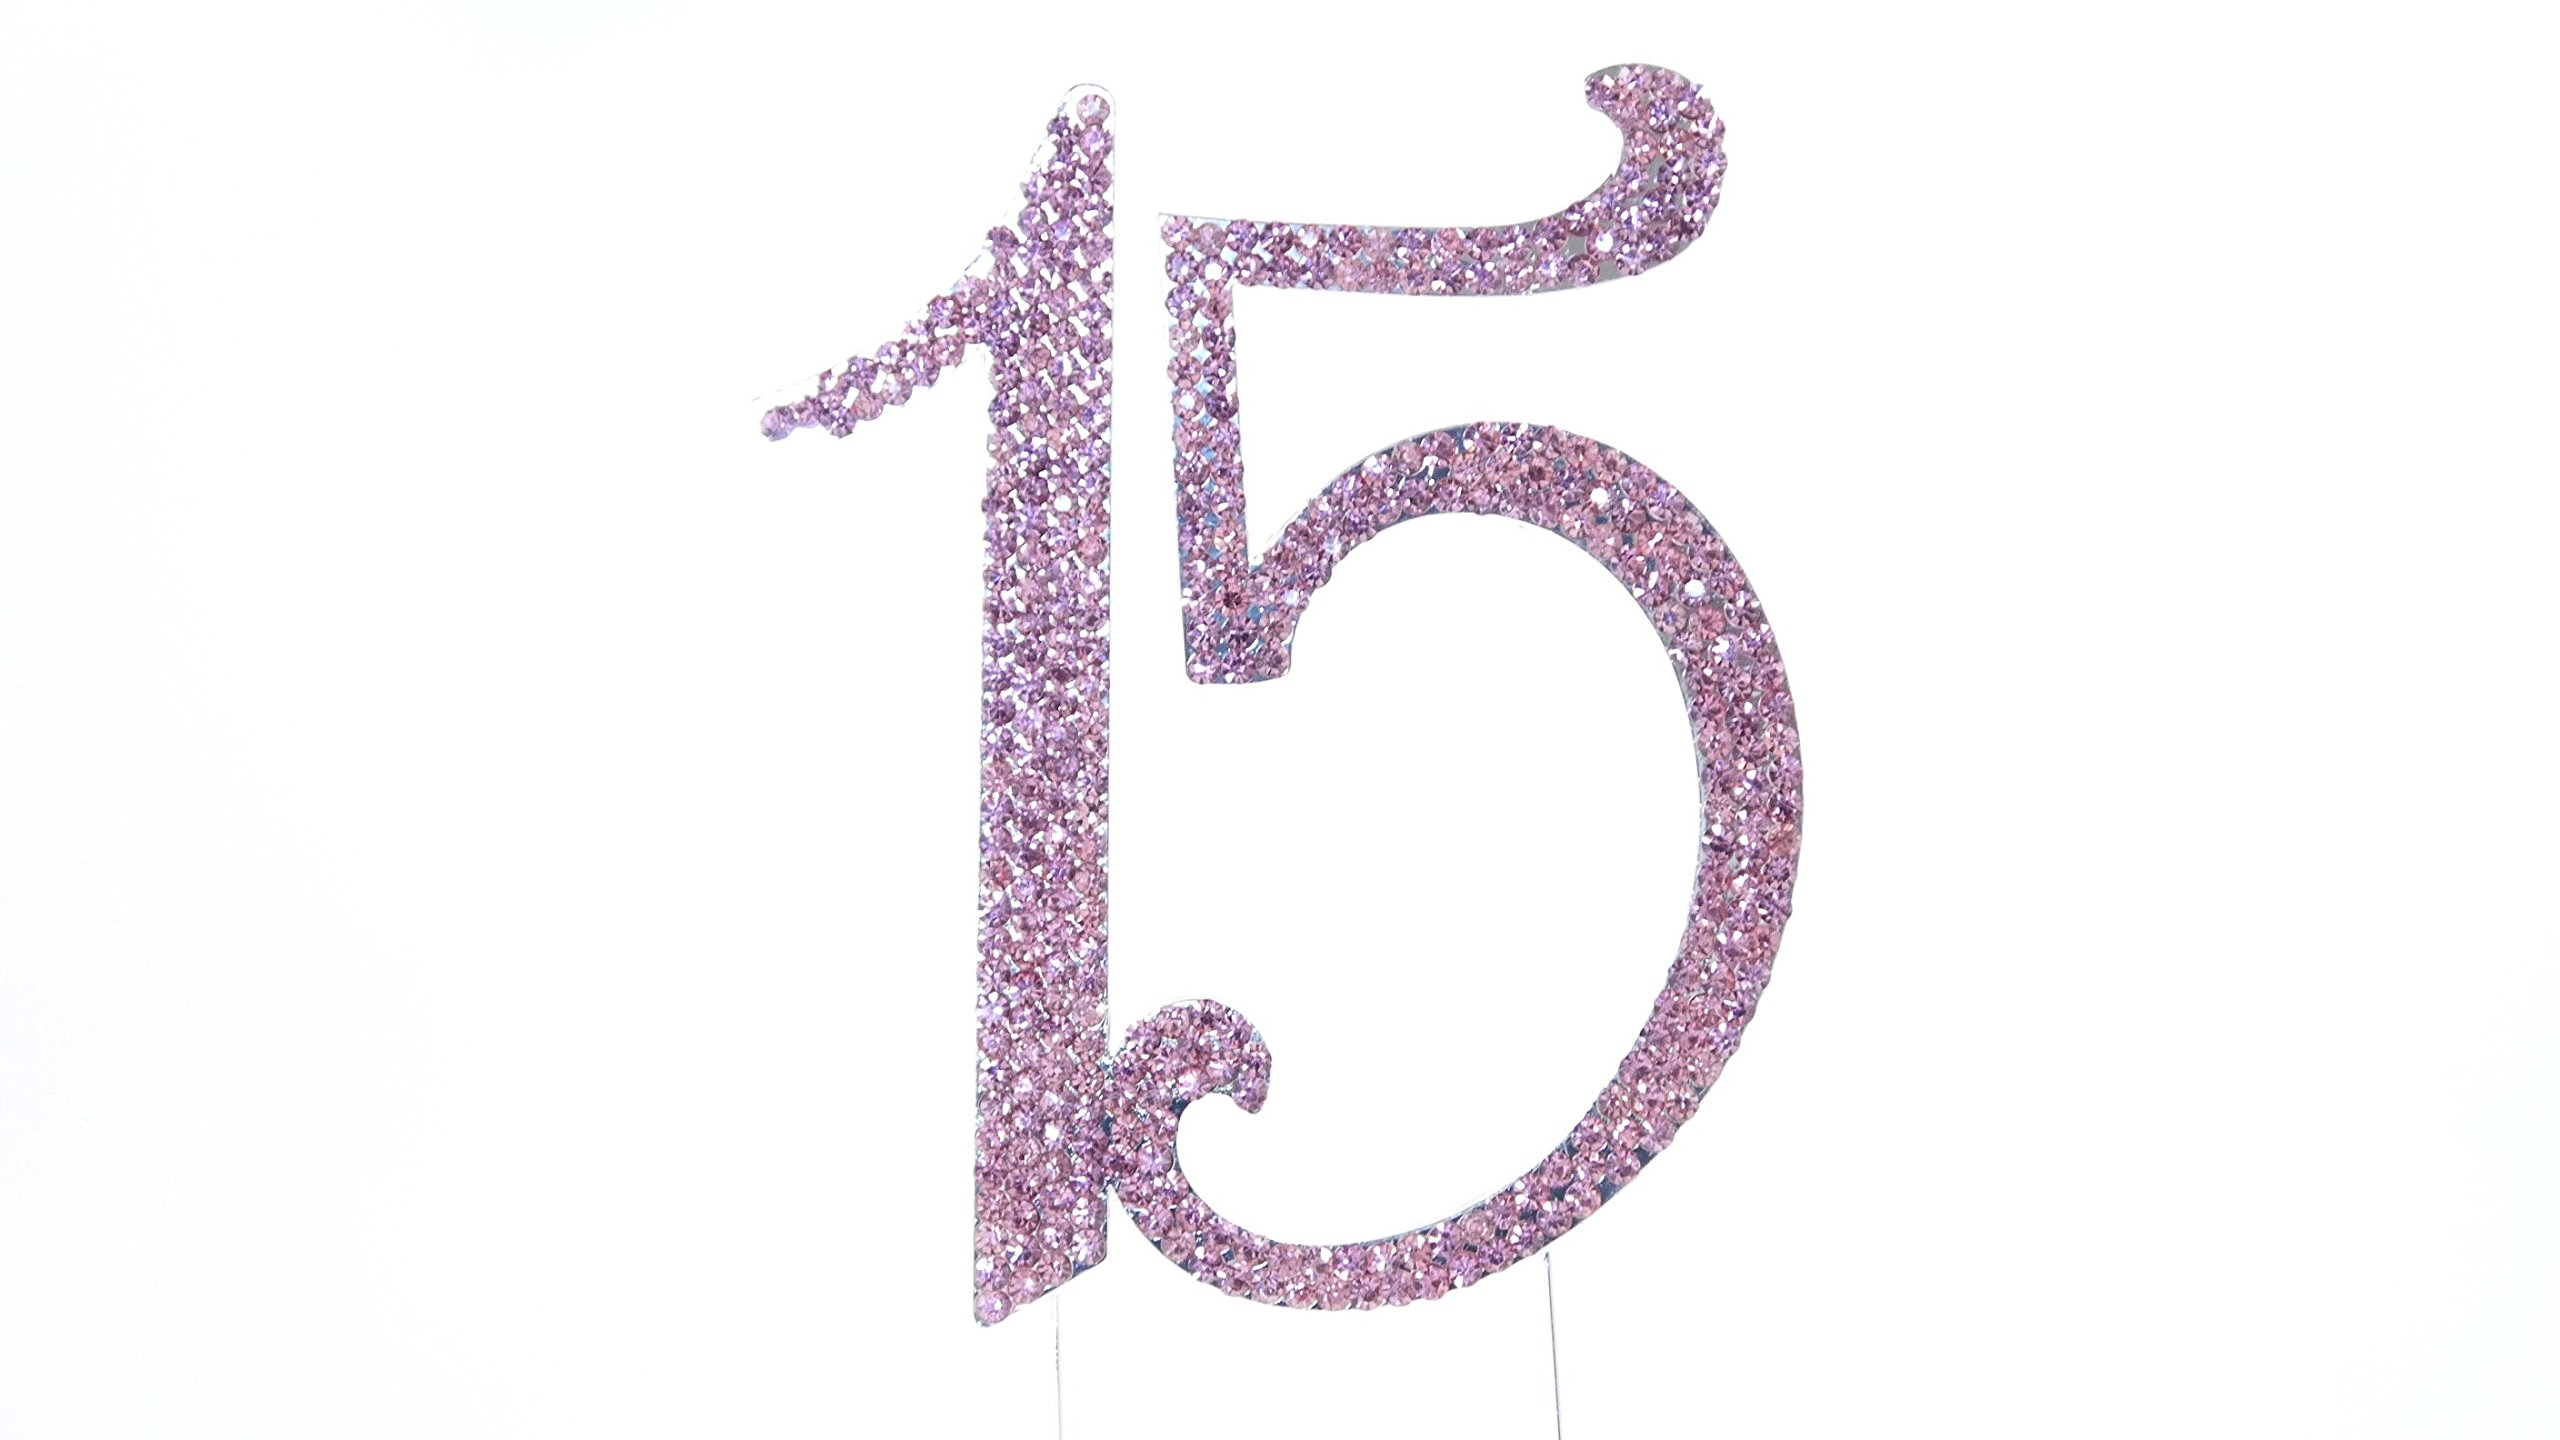 Coolest Bear 15 Pink Rhinestone Crystal Cake Topper Silver, Numbers, Letters for Wedding, Birthday, Anniversary, Party. Shine & Sparkles. RHINESTONE. BEST OFFER ON AMAZON. (15 PINK)